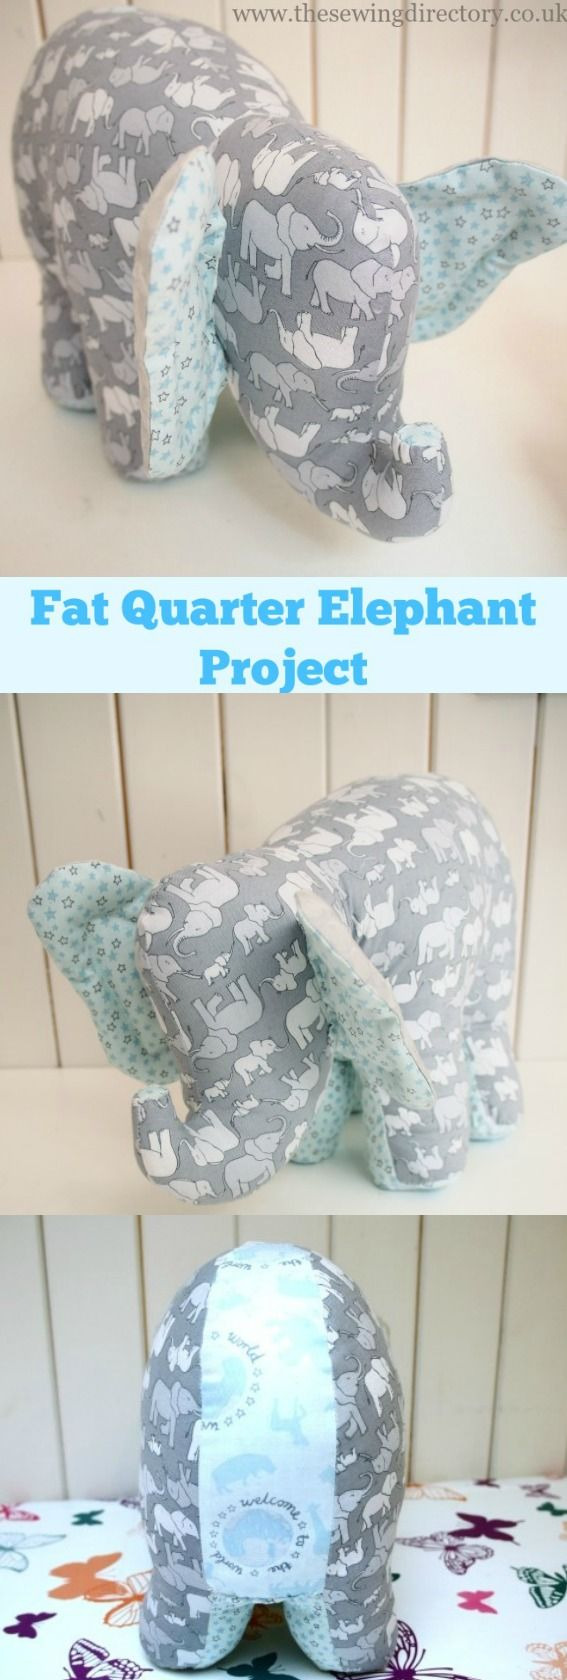 Solid emerald turquoise fabric by the yard teal fabric carousel - Sew This Adorable Soft Toy Elephant With 4 Fat Quarters Of Fabric Fatquarterproject Softtoyproject